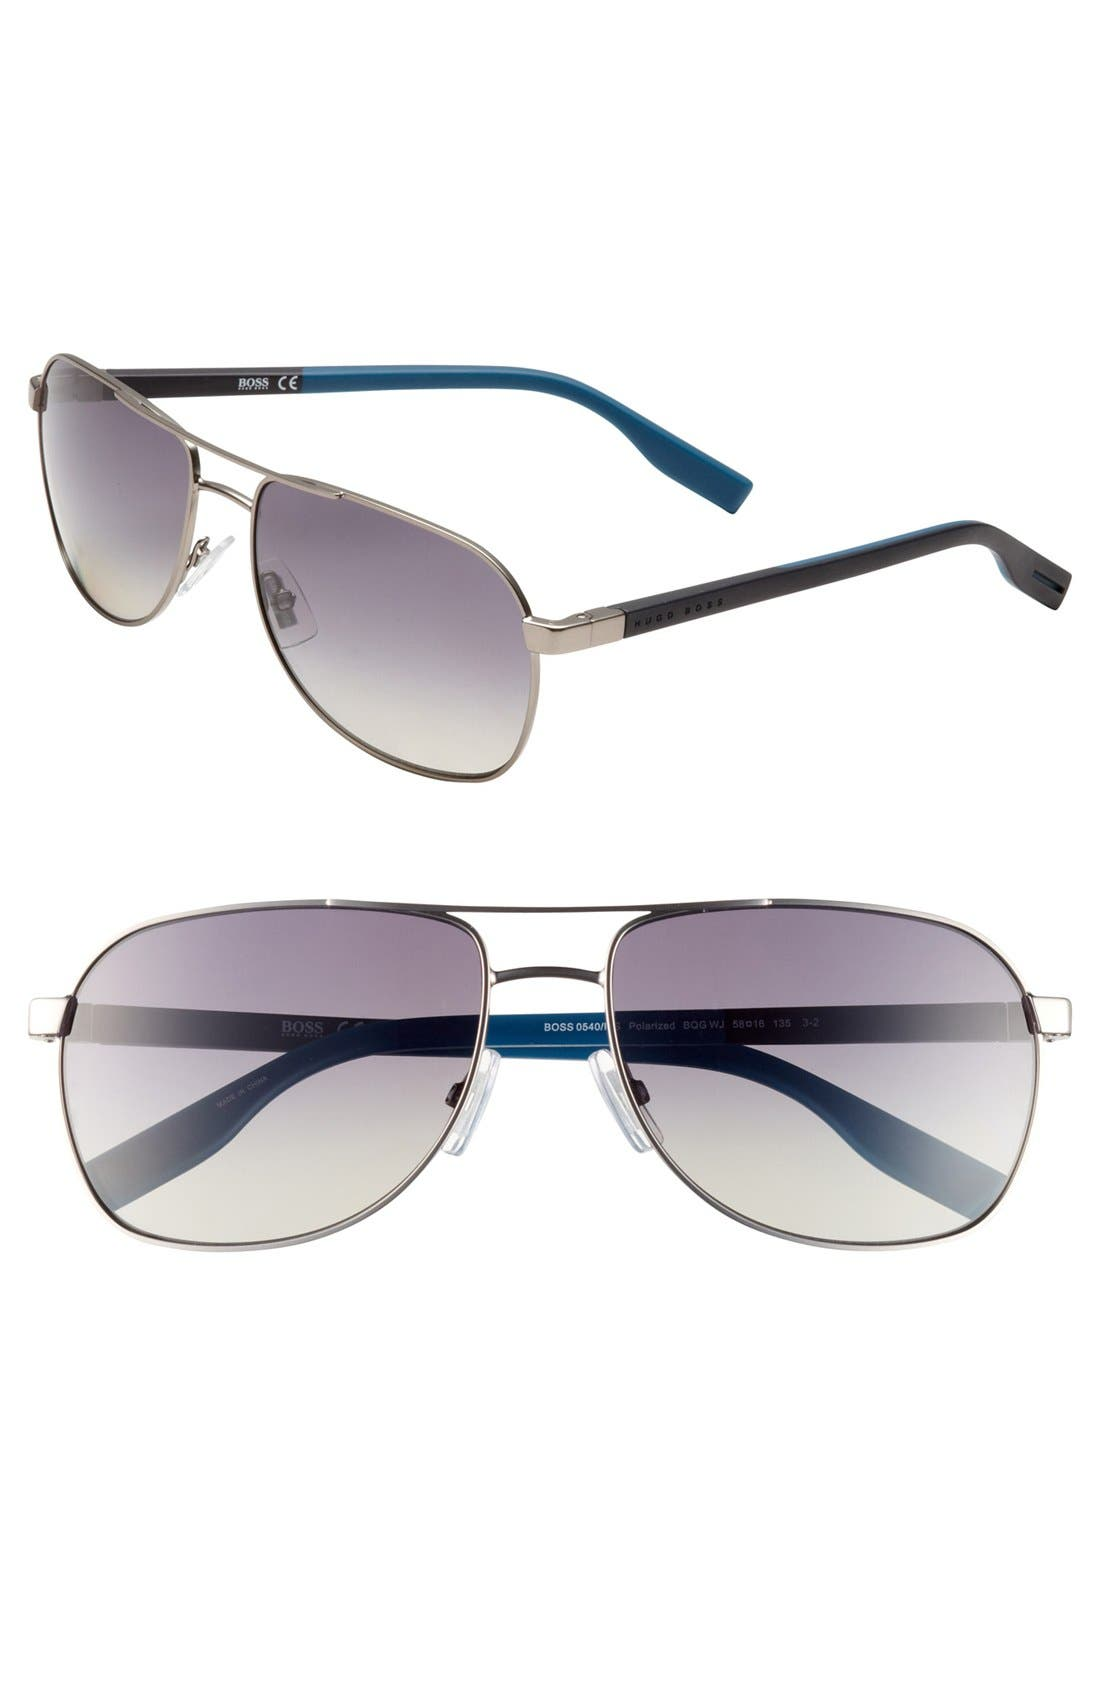 Main Image - BOSS Polarized Aviator Sunglasses